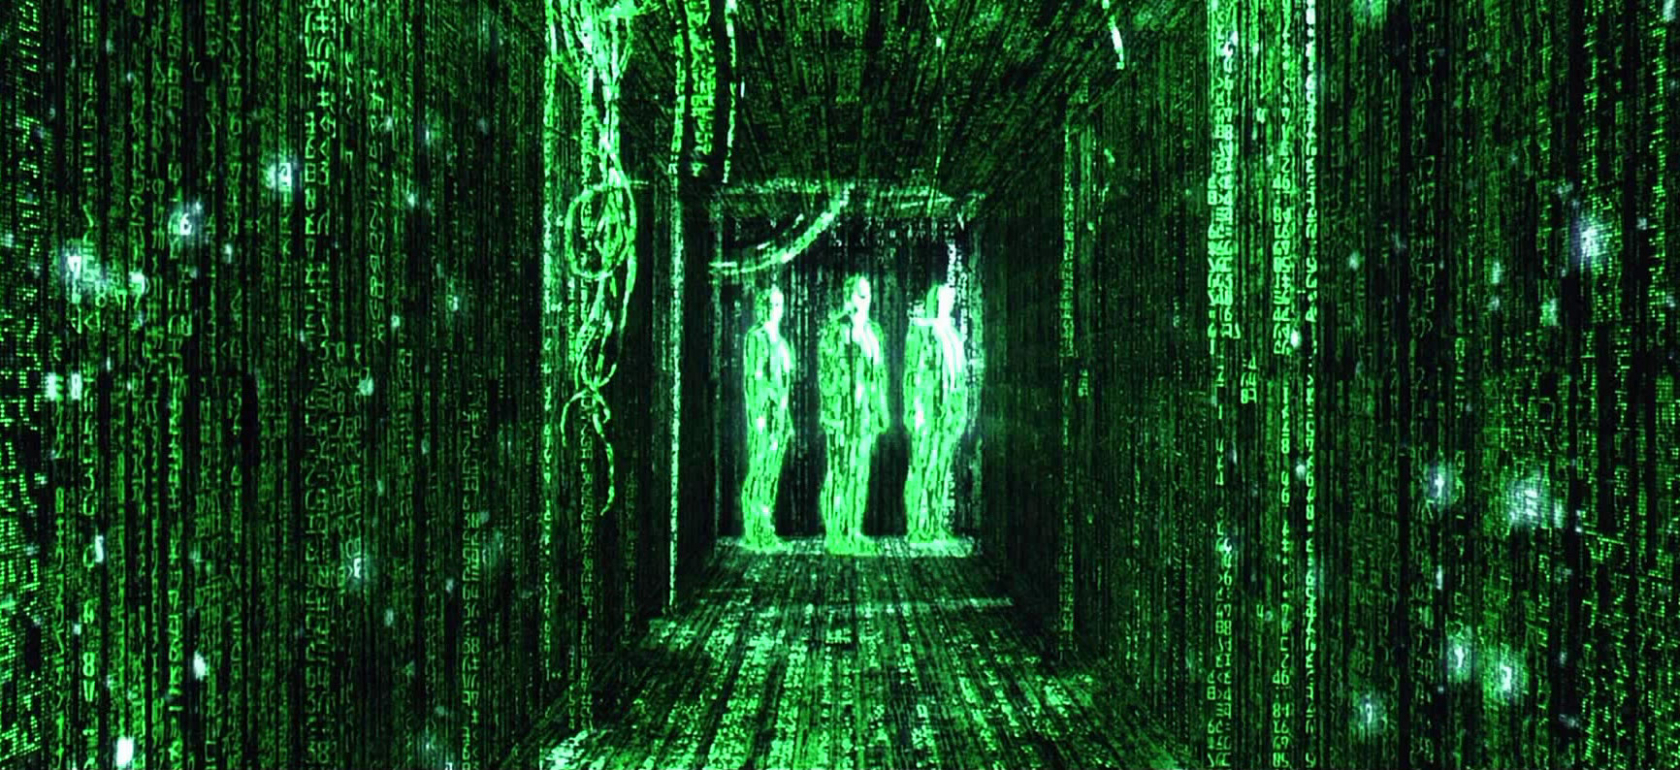 Quantum physicists conclude that existence cannot possibly be a computer simulation